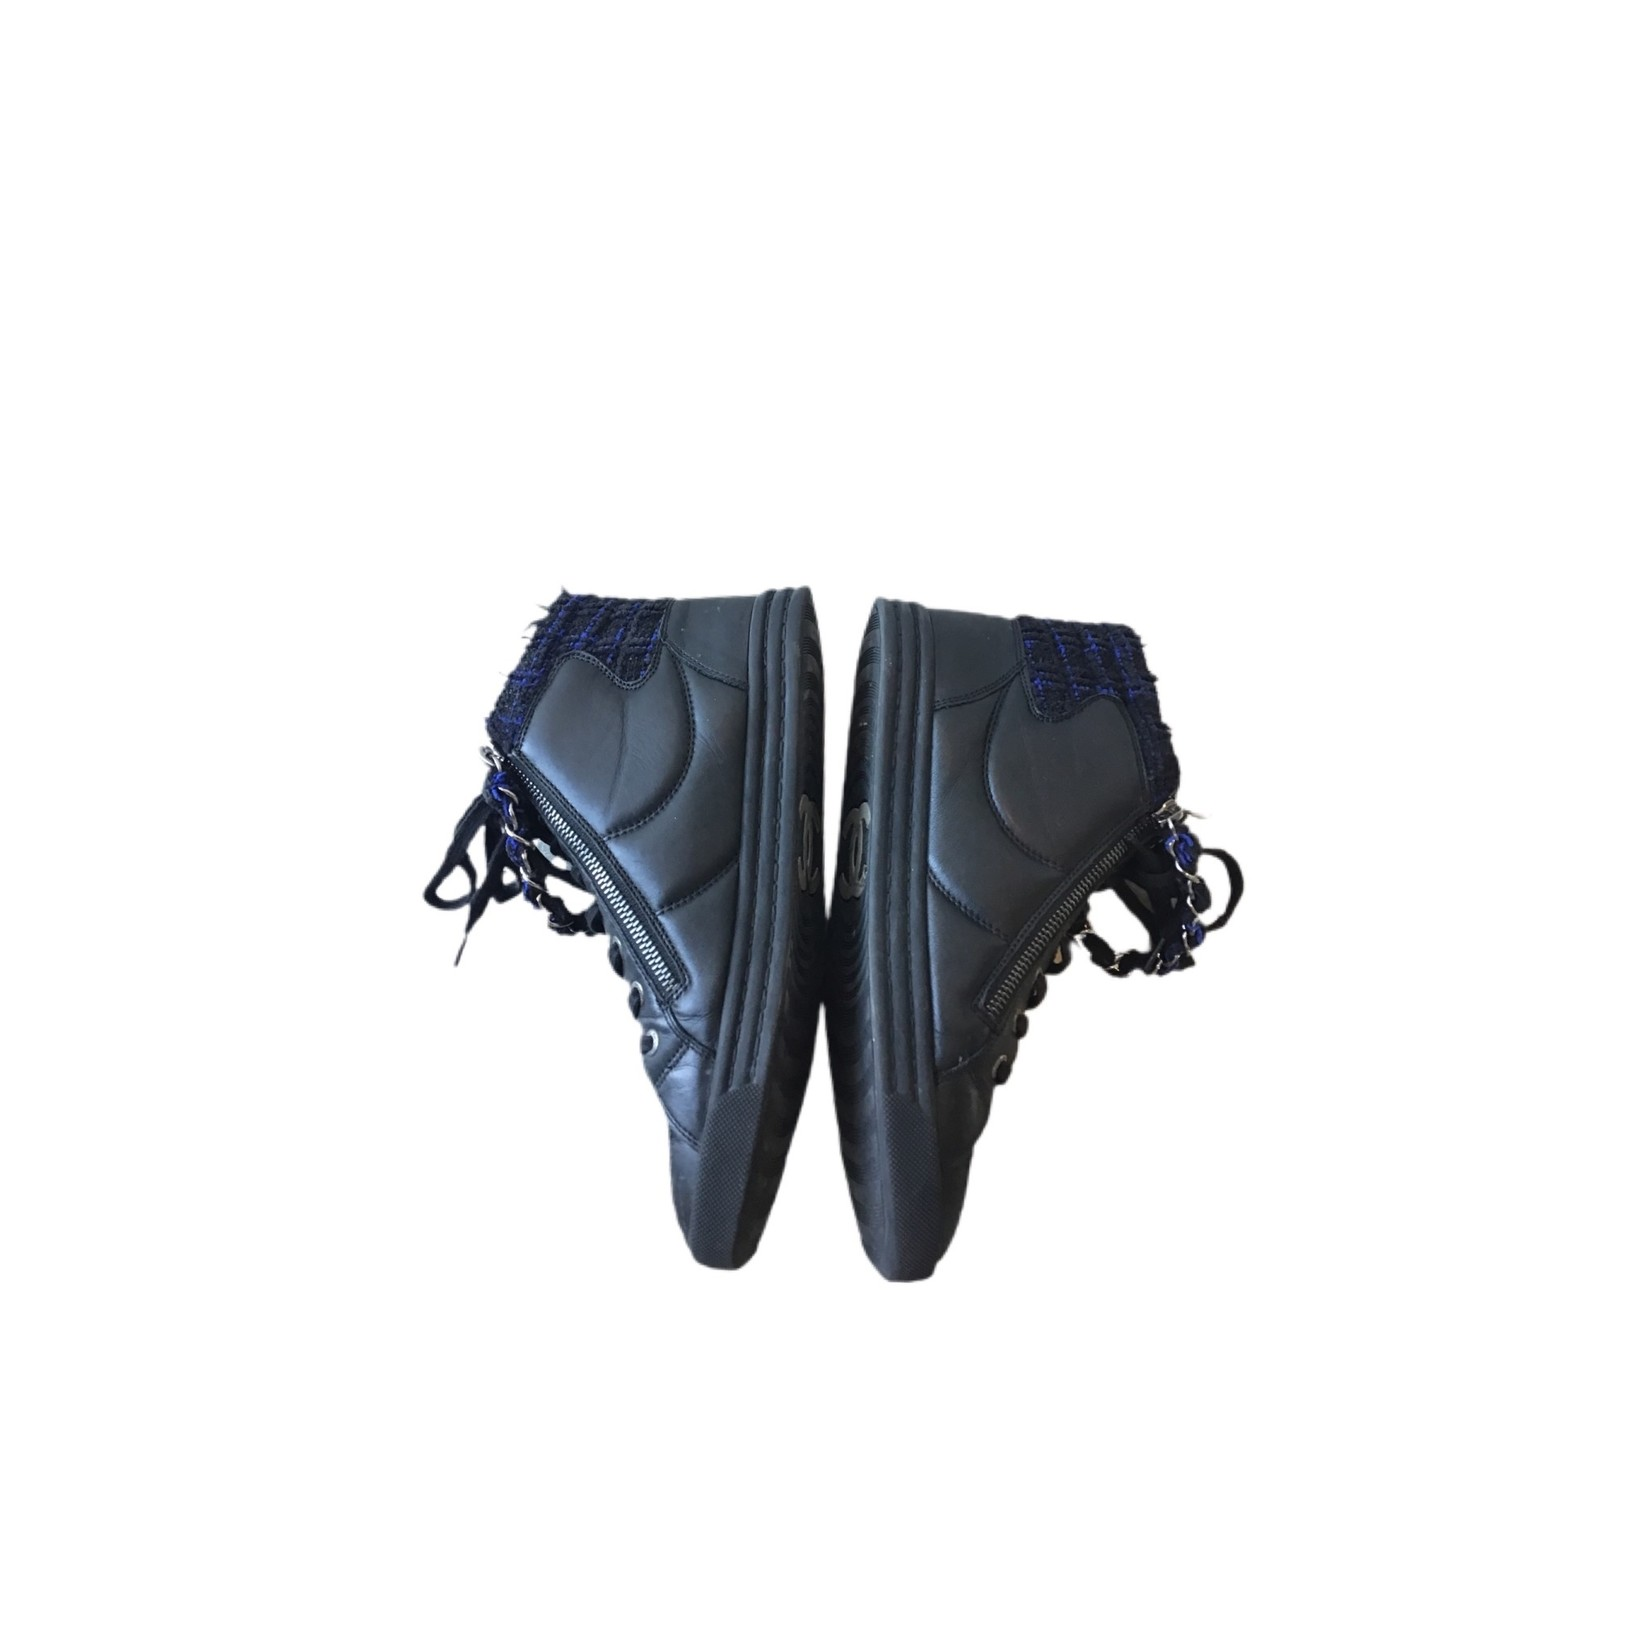 Wyld Blue Vintage Black Chanel High Top Sneakers